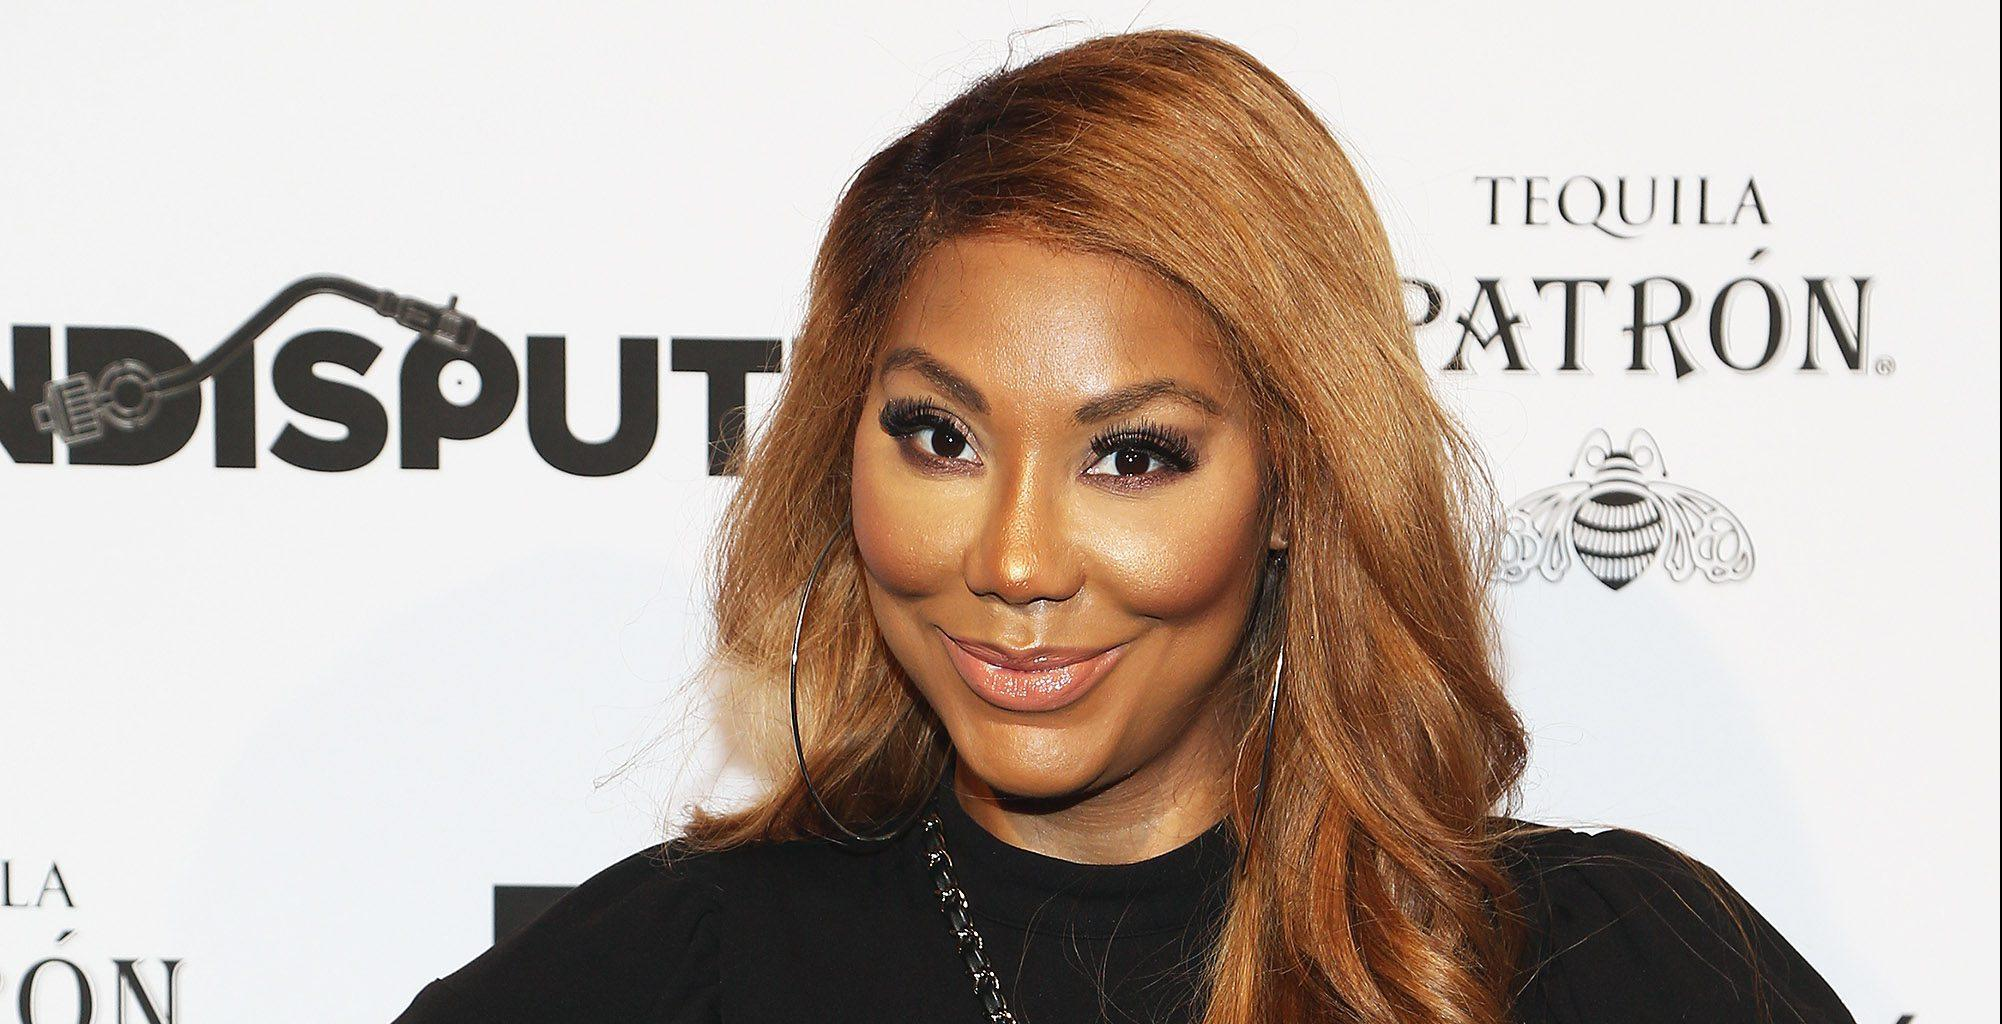 Tamar Braxton Made Her Fans Laugh With This Post Related To Men